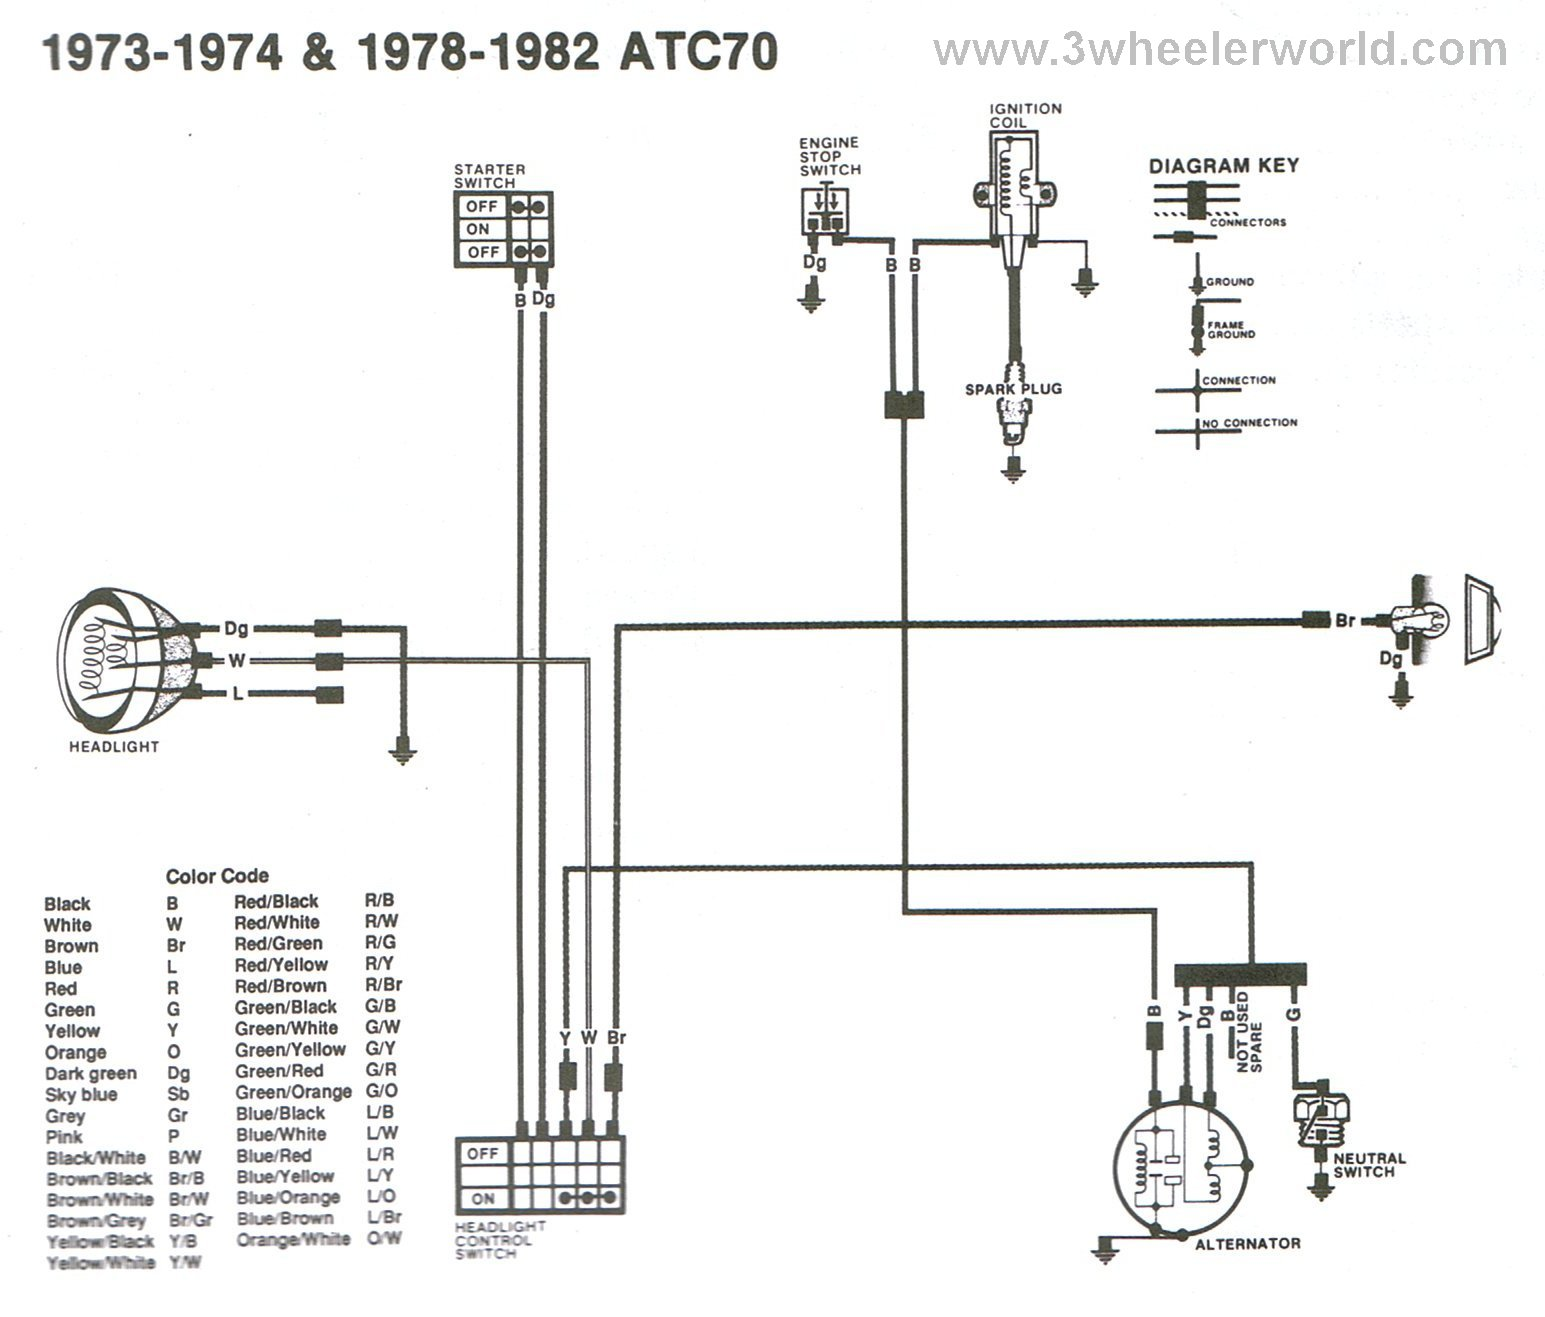 1982 honda z50r wiring diagram different diagrams in software engineering z50 best library atc70 pocket bike harness 78